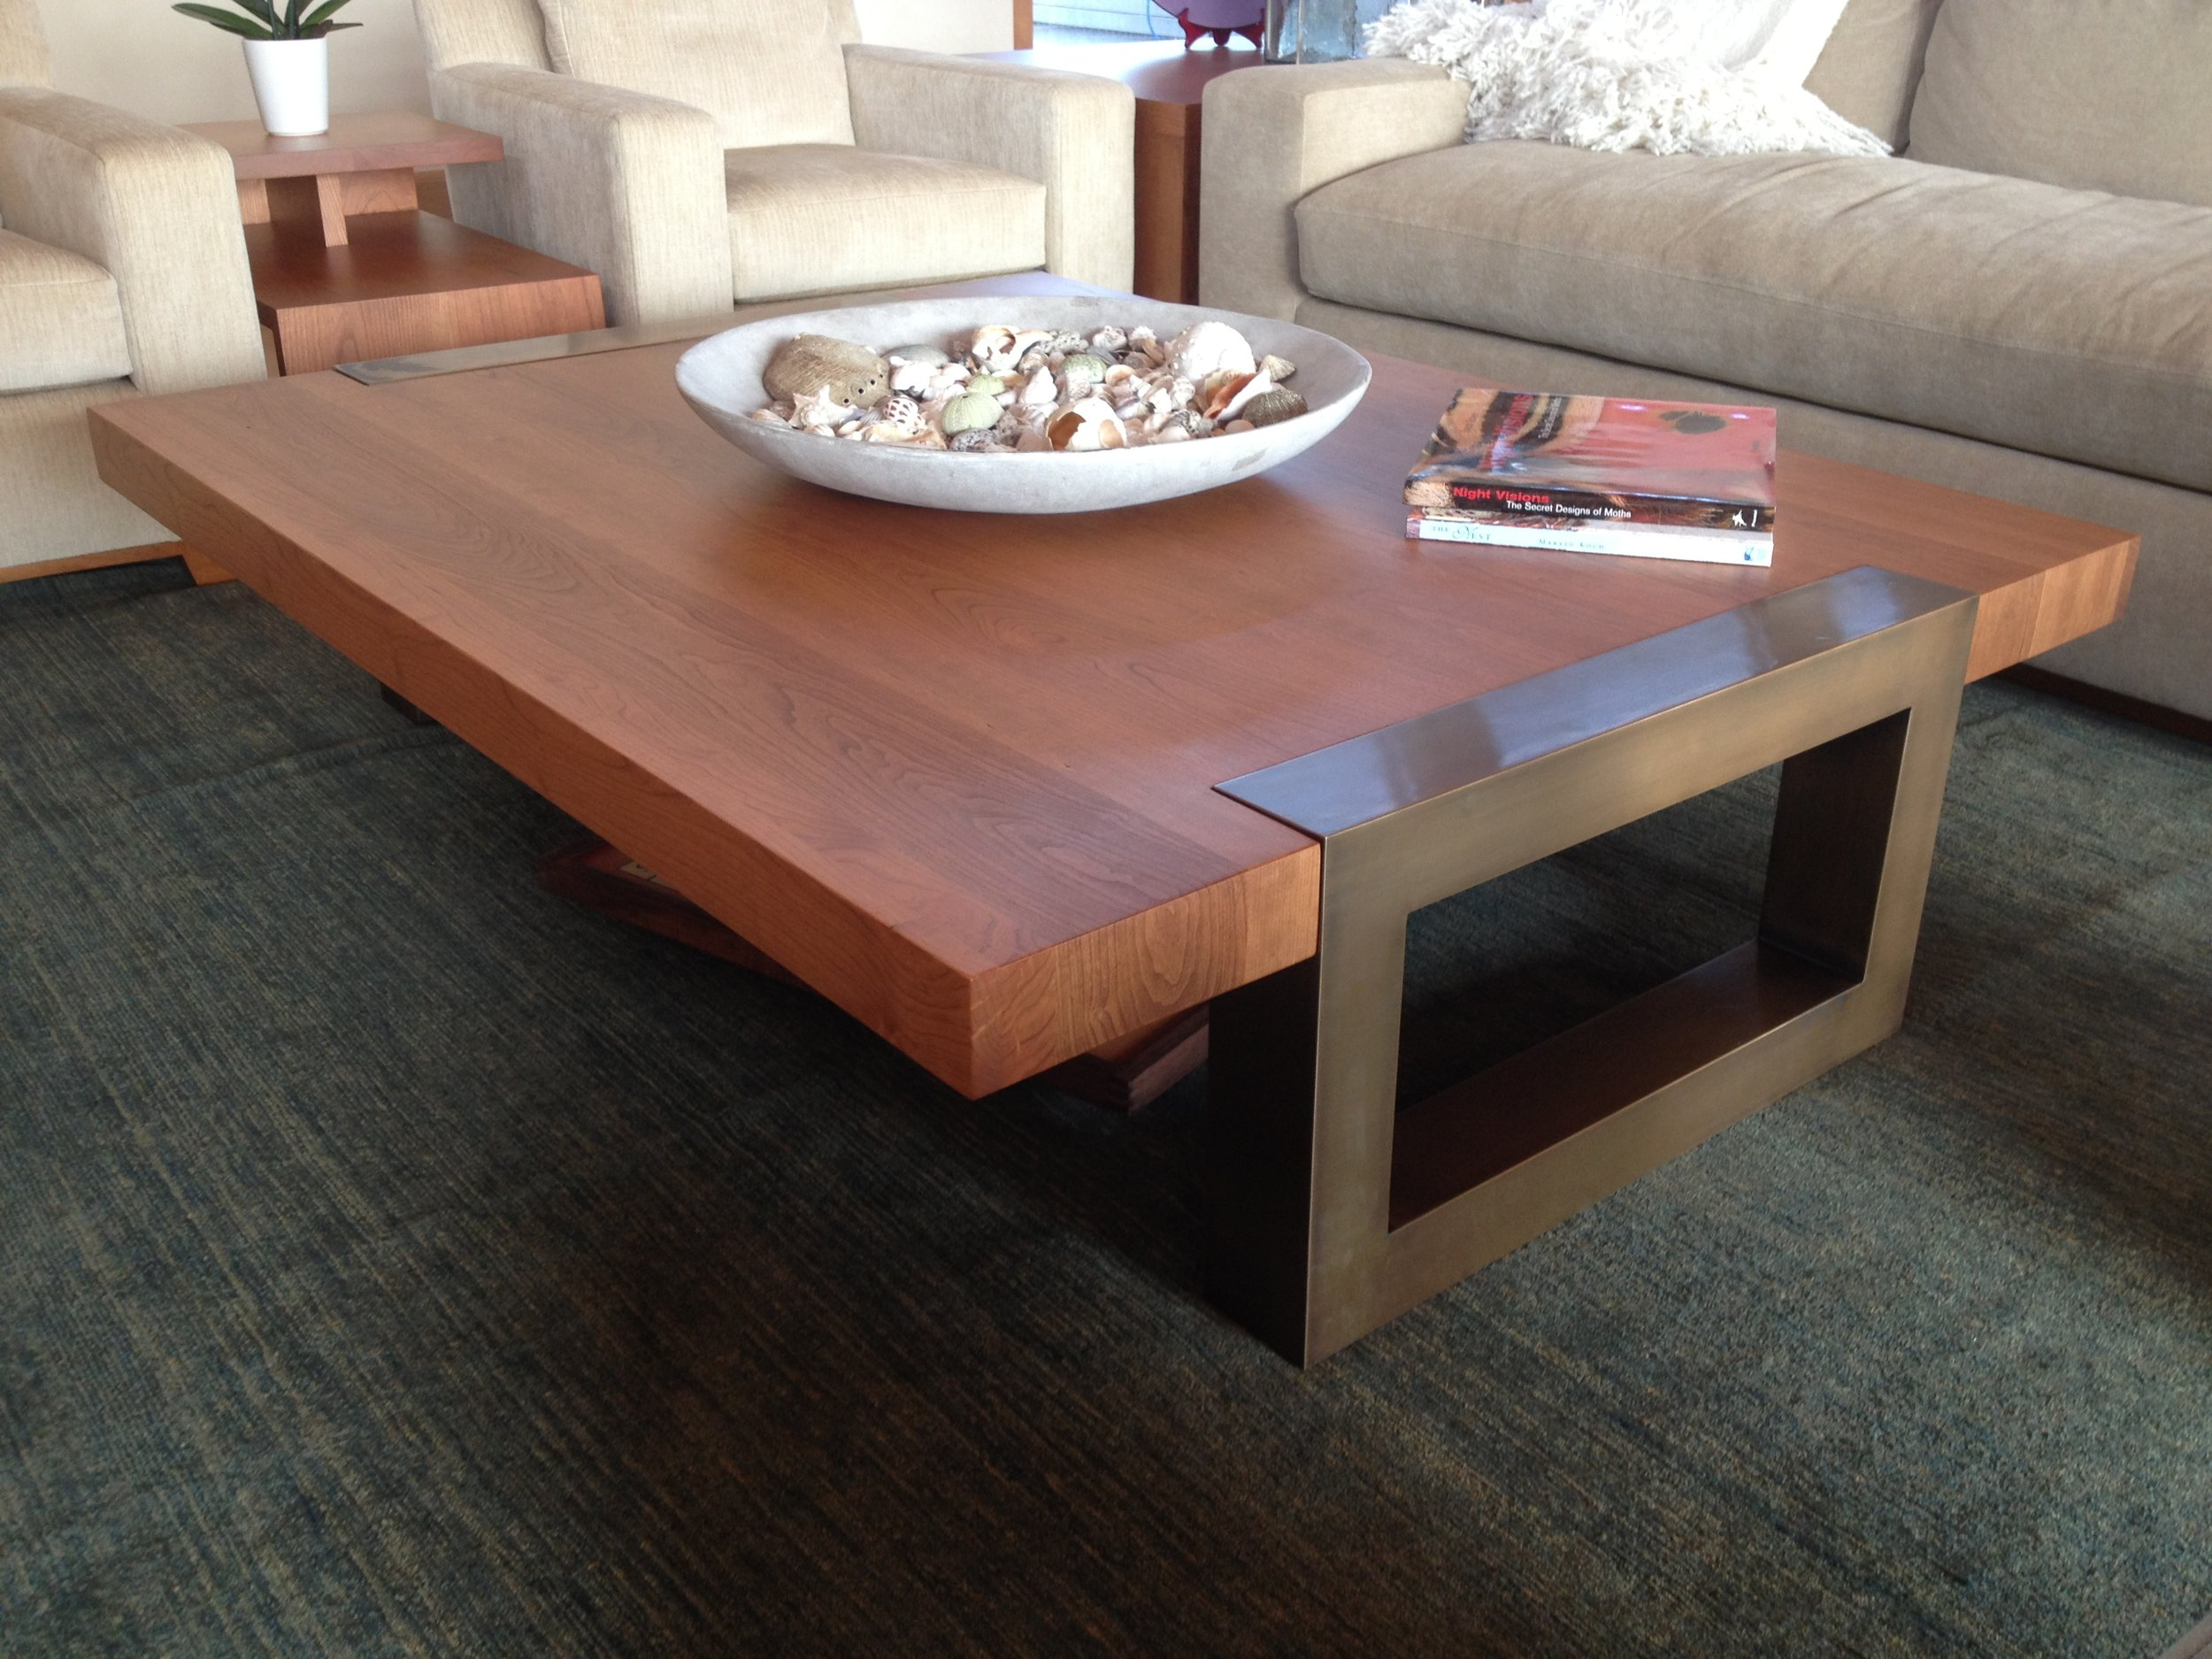 Bronze Table Legs with Wood Top